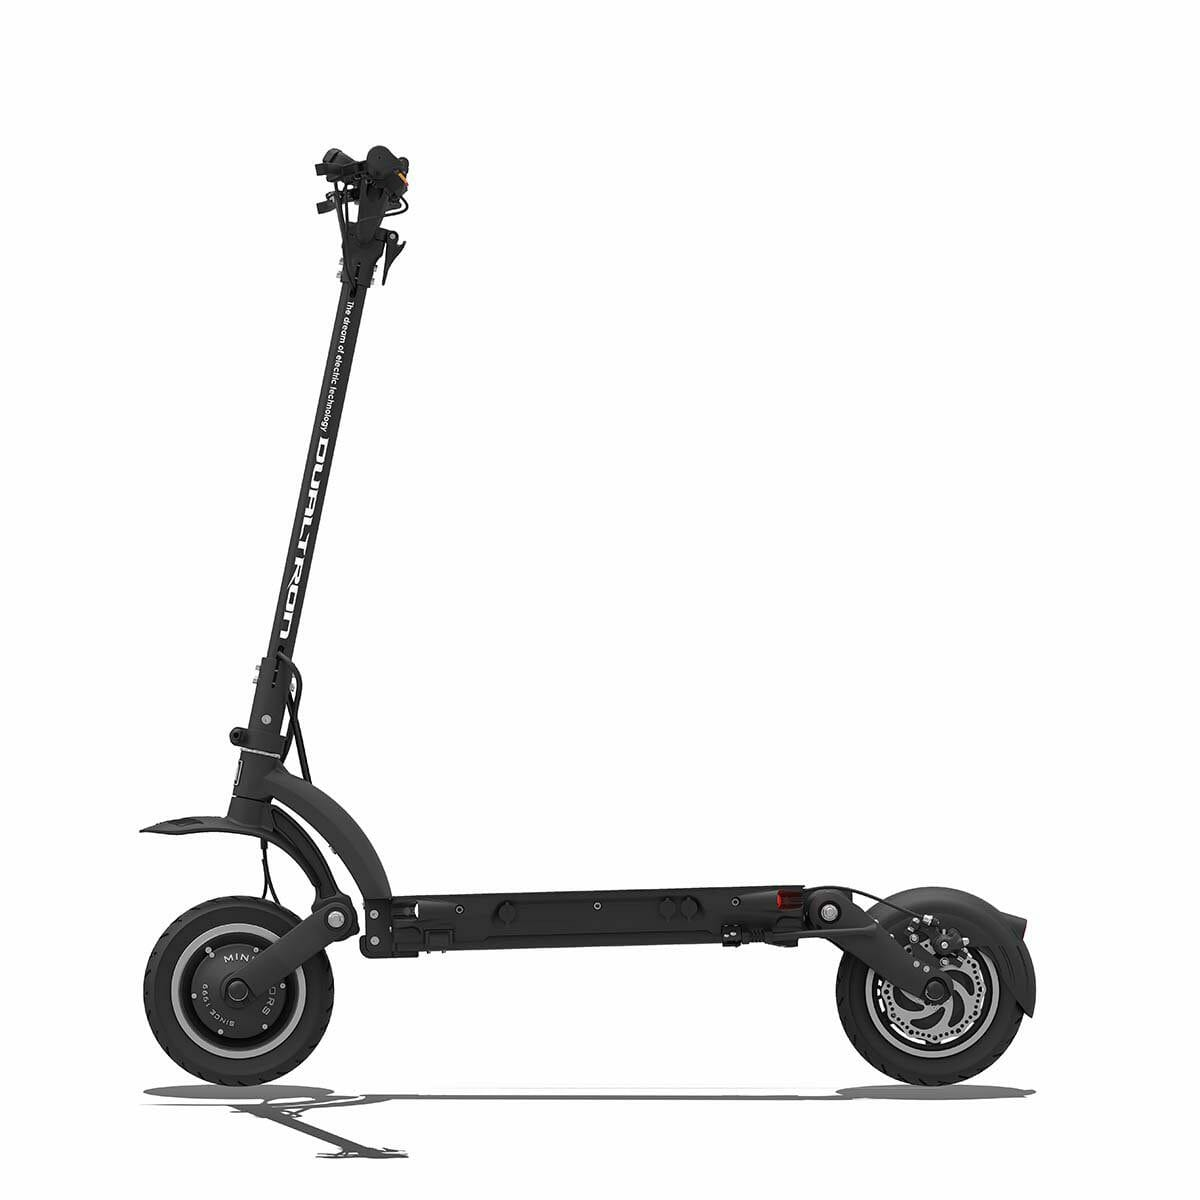 Dualtron_eagle_electric_scooter_side_view